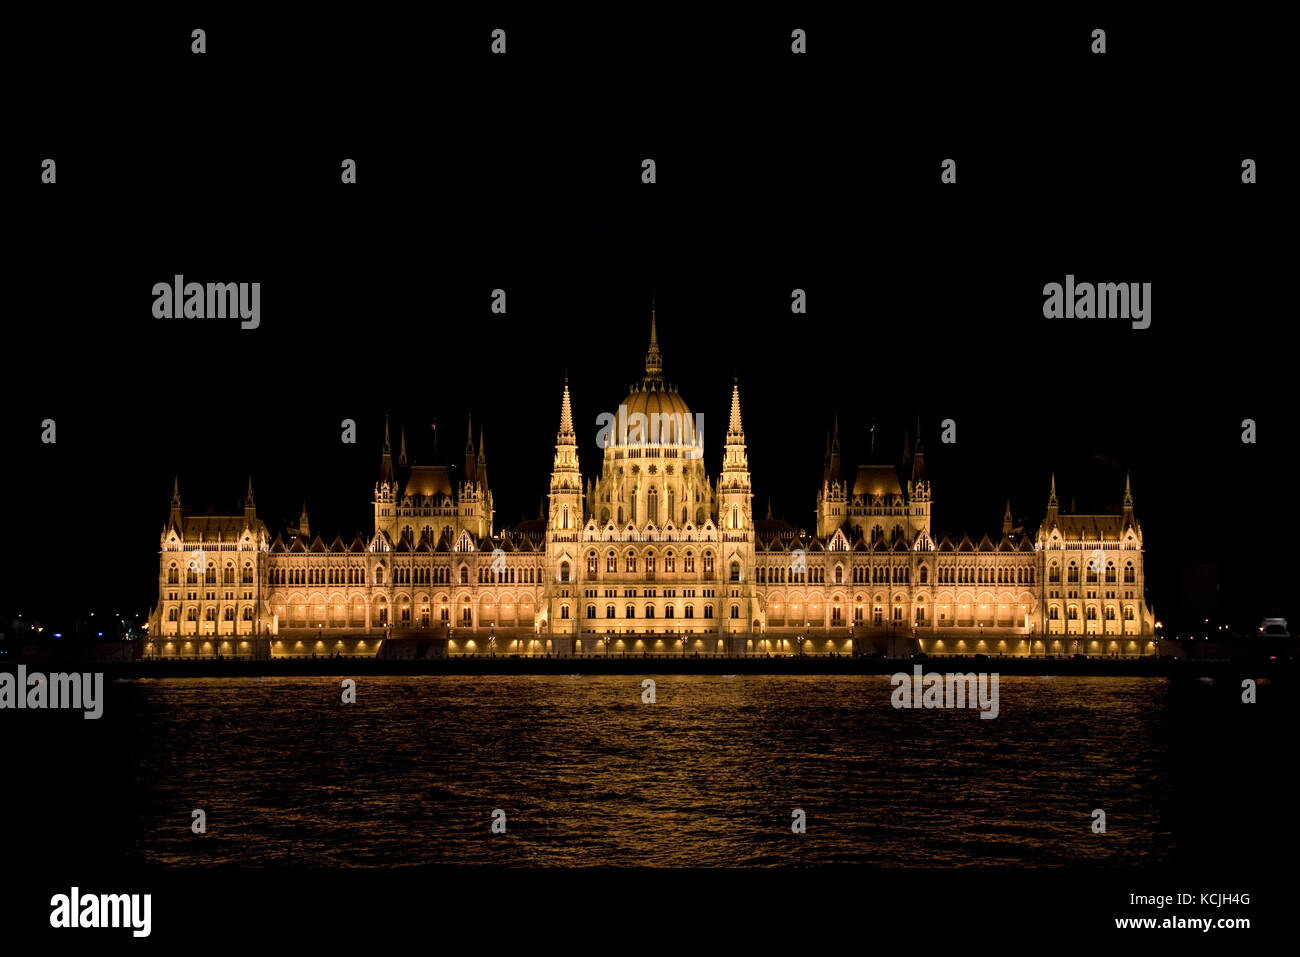 An evening nighttime view of the Hungarian Parliment Building on the Danube river in Budapest. - Stock Image